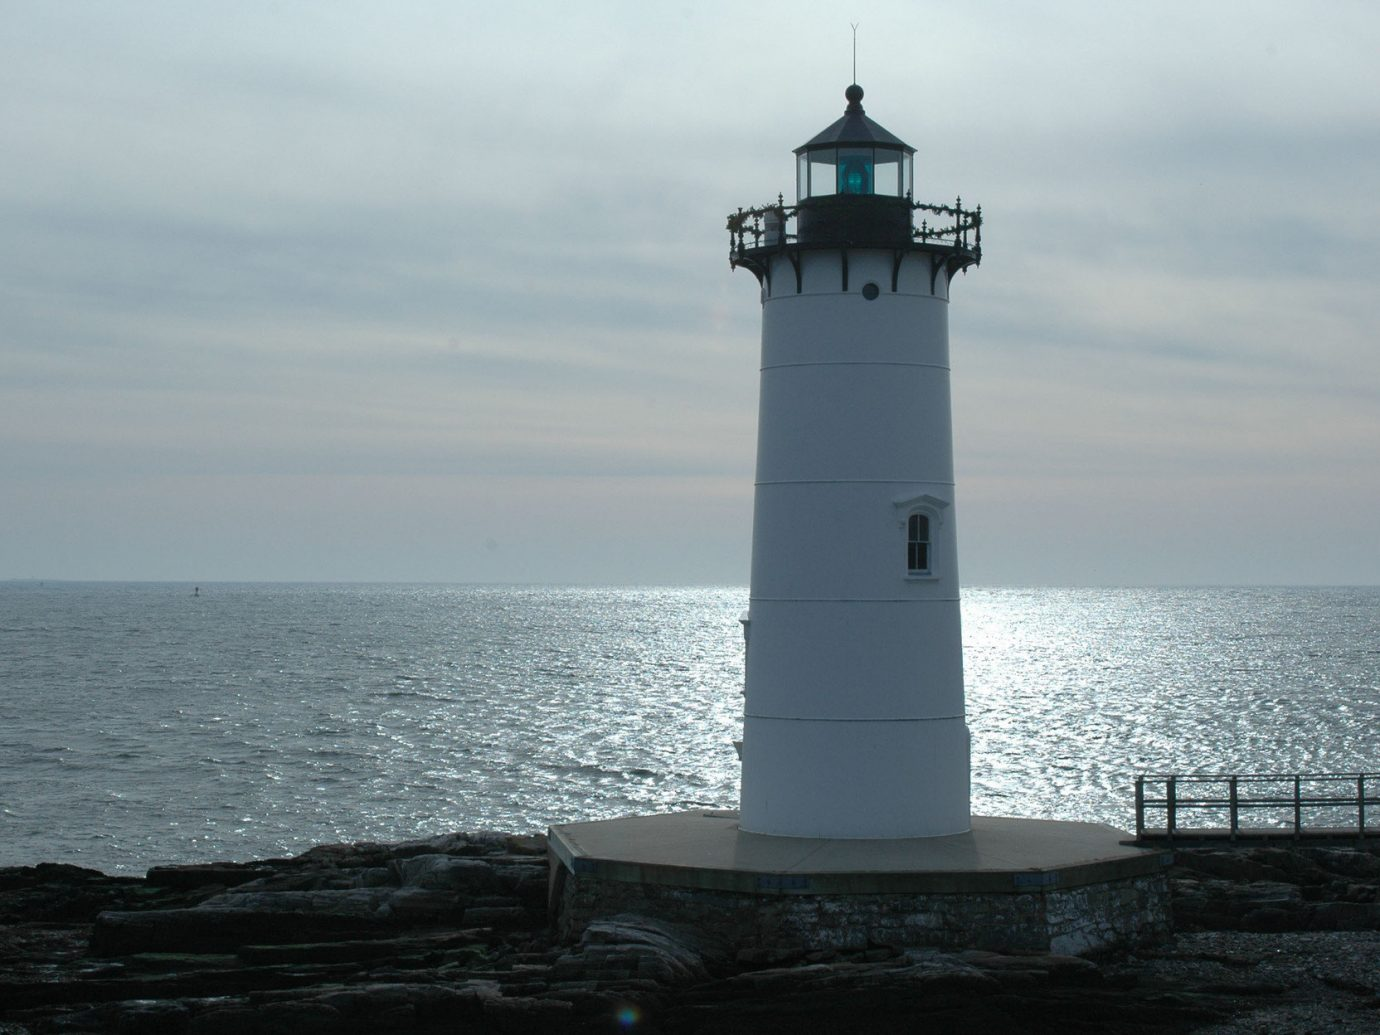 Trip Ideas water sky outdoor lighthouse tower Sea Ocean Coast cape overlooking